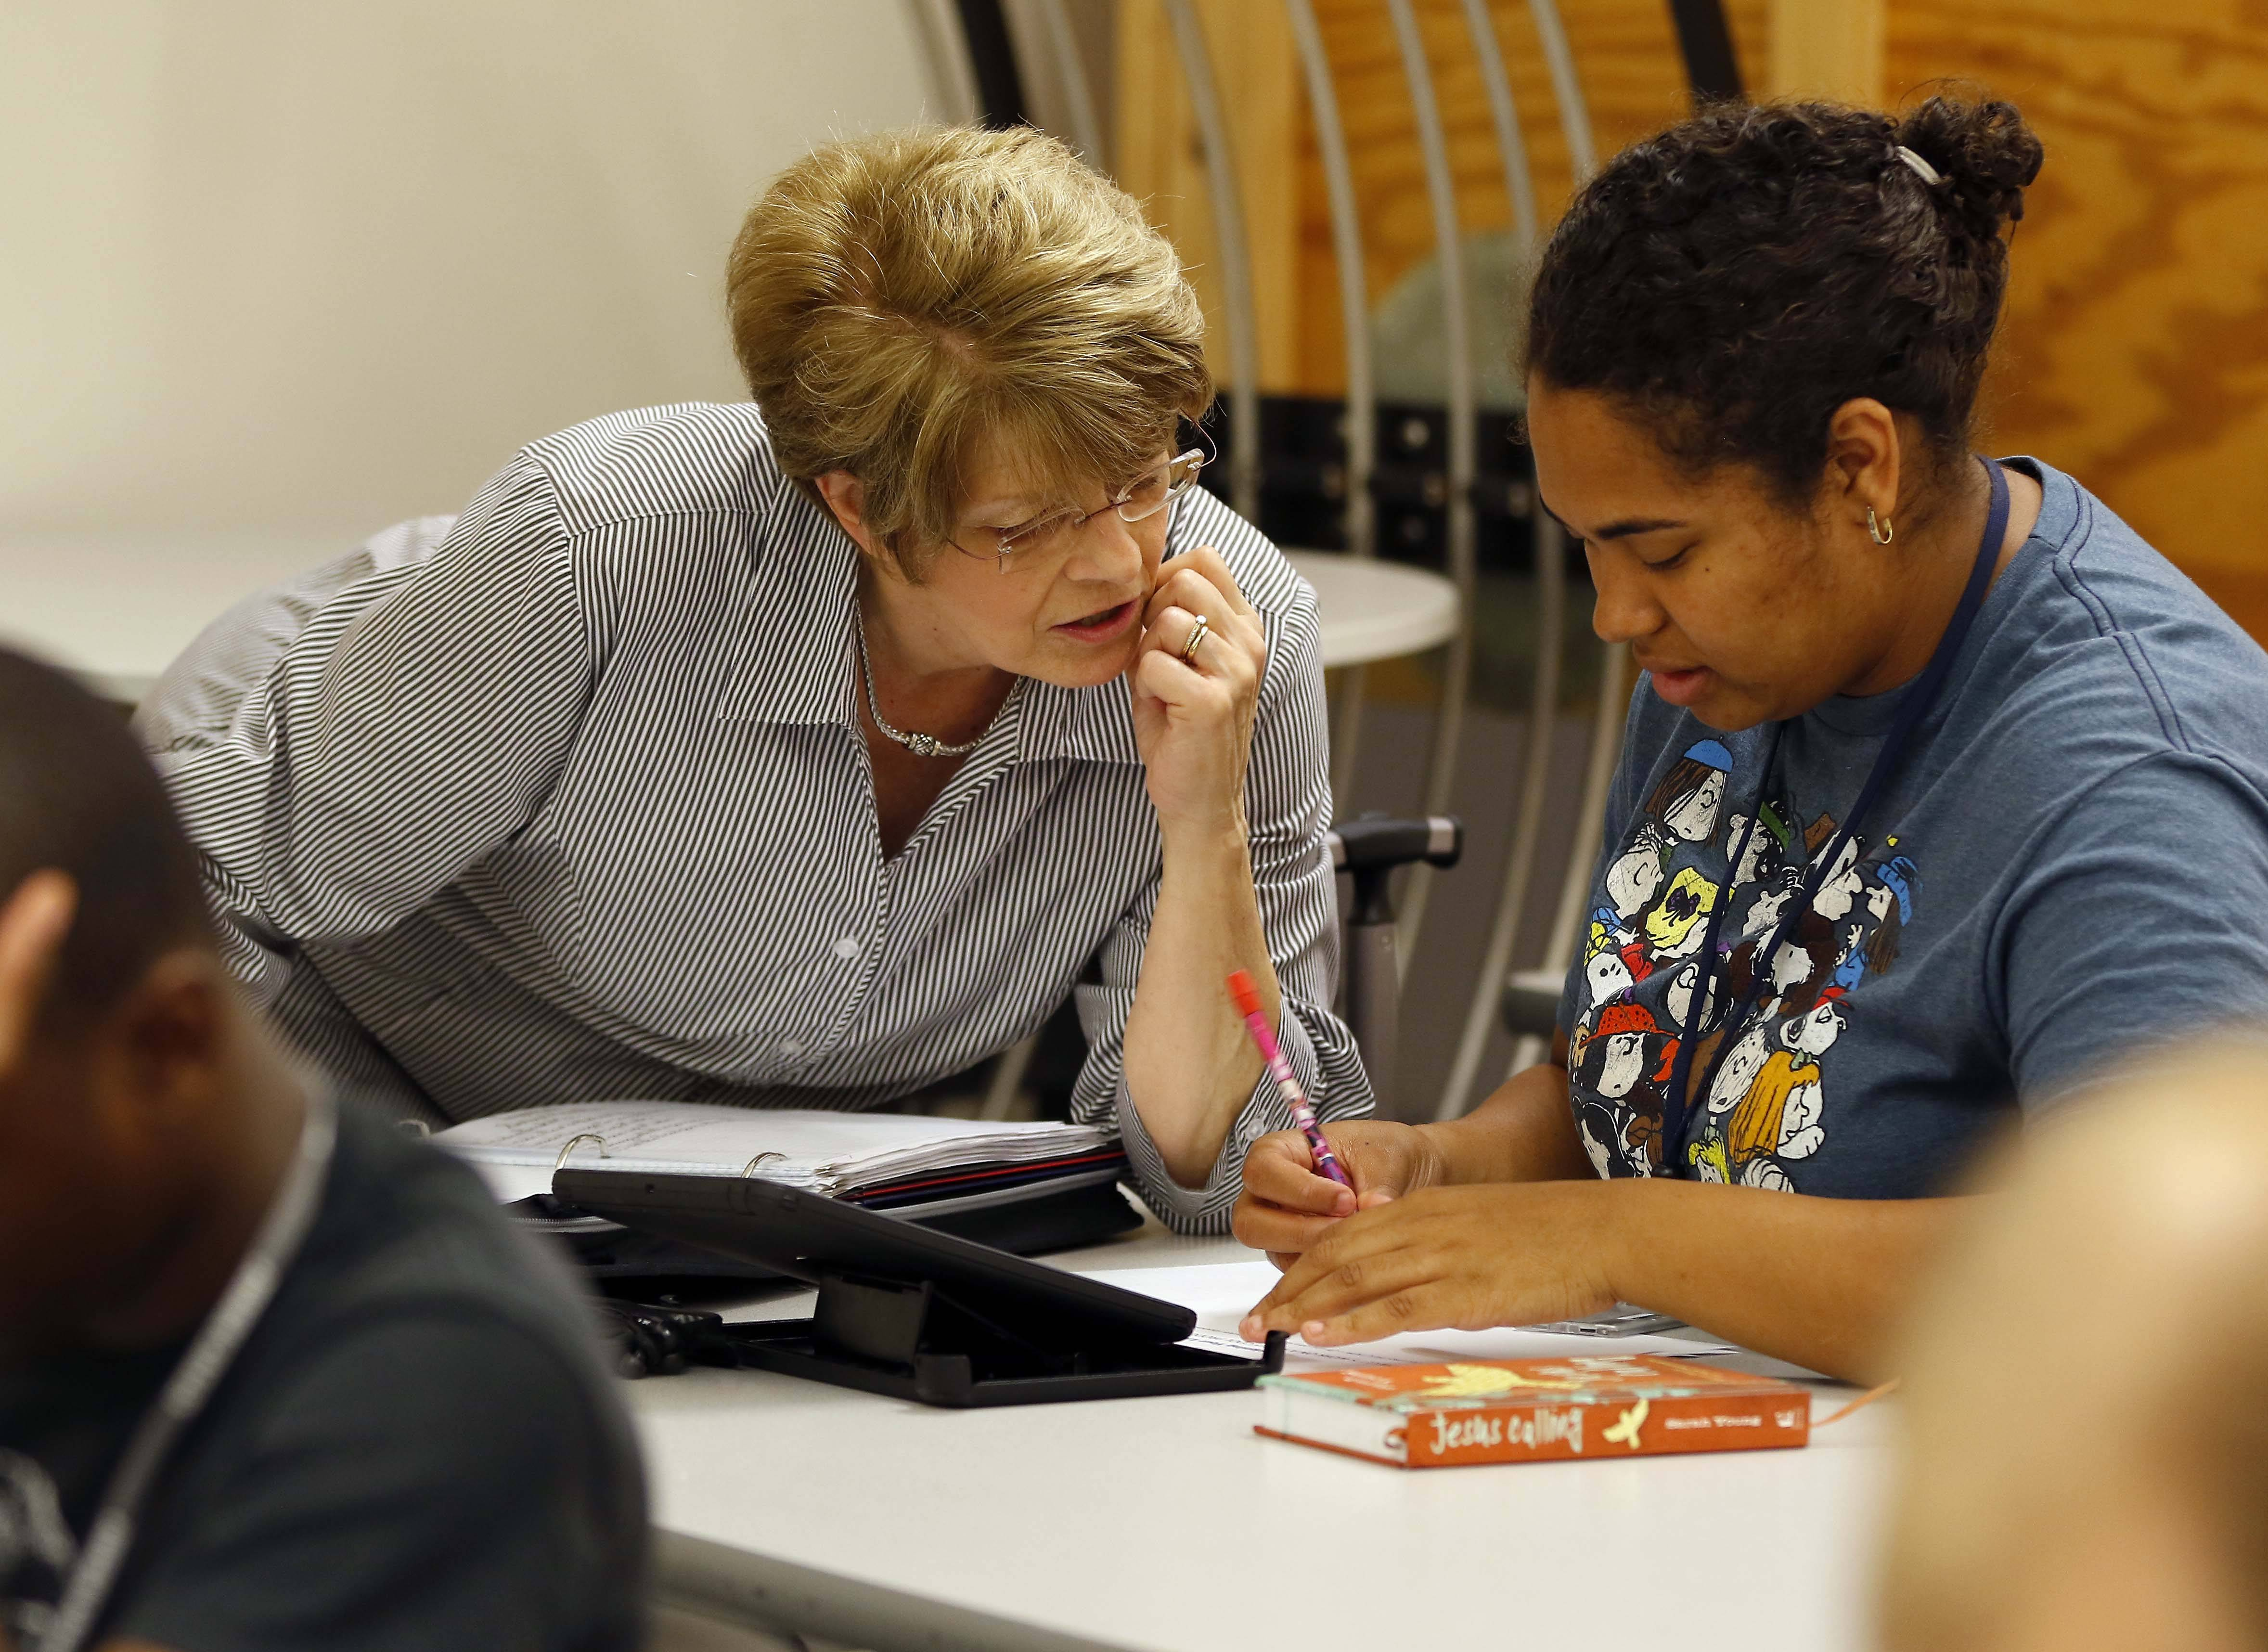 Kathy Lambert, left, works with Serena Williams of Carpentersville, one of 12 students in Judson University's new RISE two-year certificate program for students with intellectual disabilities. RISE stands for Road to Independent Living, Spiritual Formation and Employment.